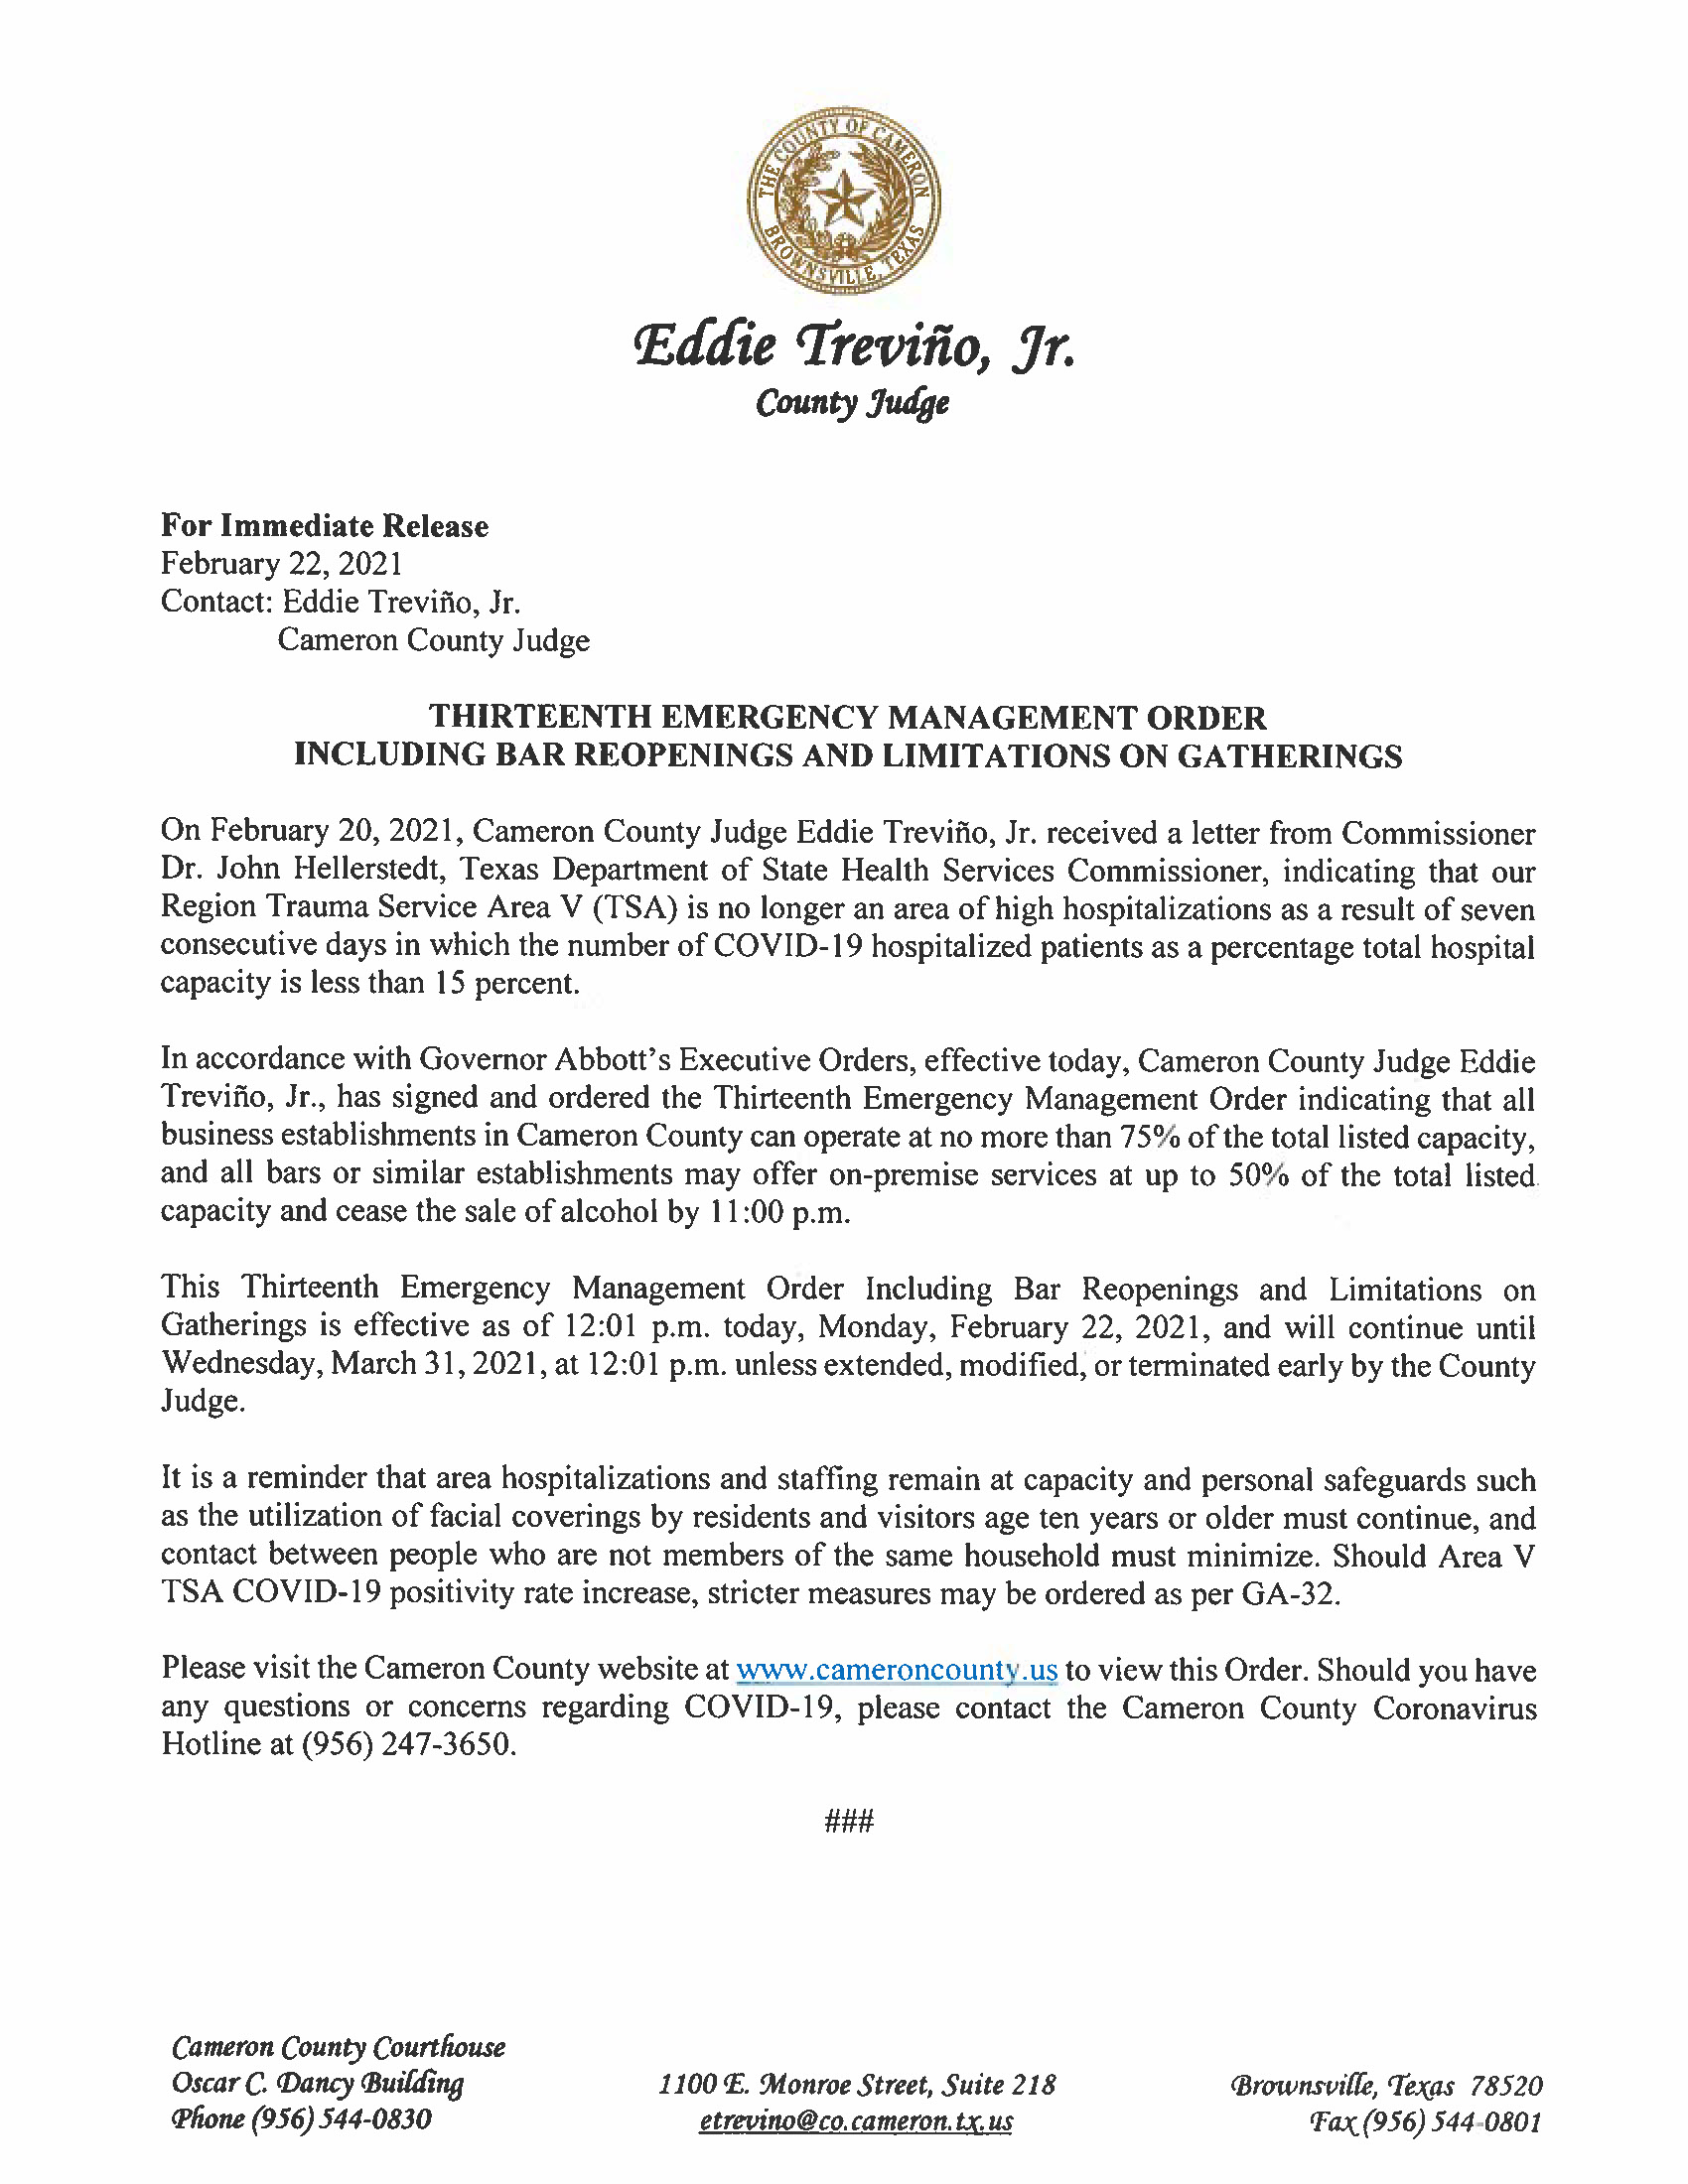 2.22.21 Release Thirteenth Emergency Management Order Including Bar Reopenings And Limitations On Gatherings